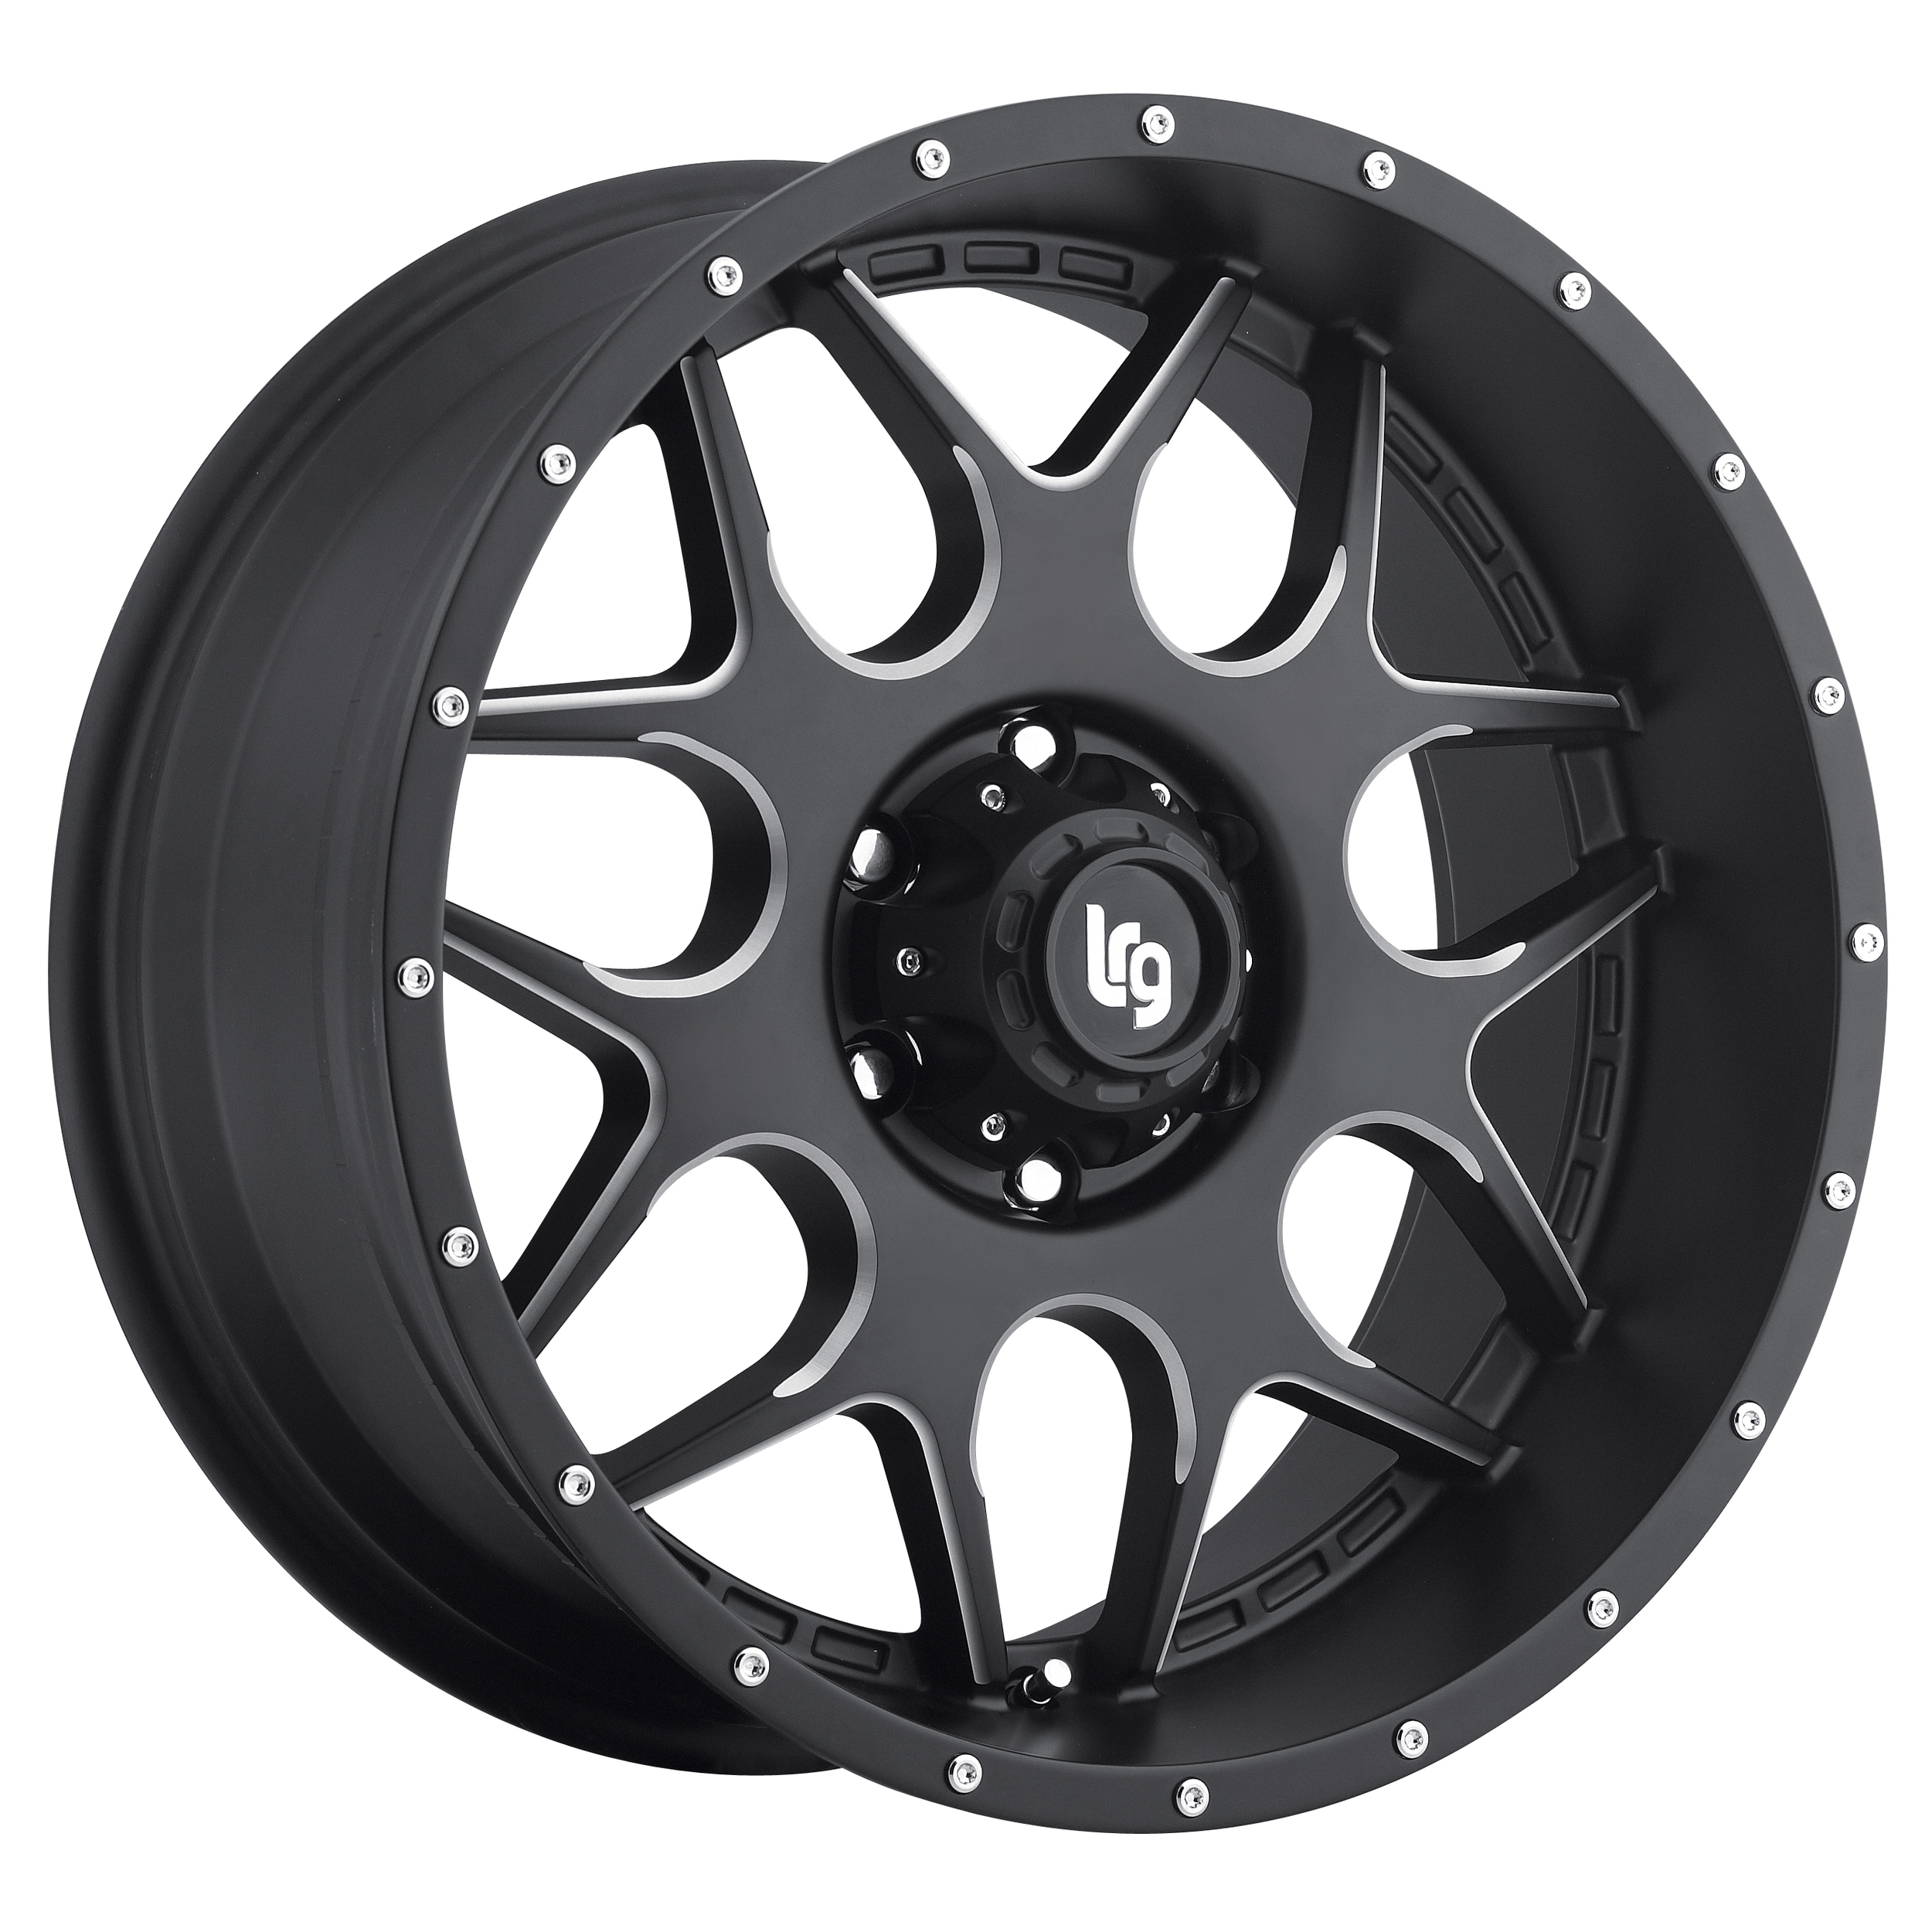 LRG Rims Series 104 Black Machined Wheels